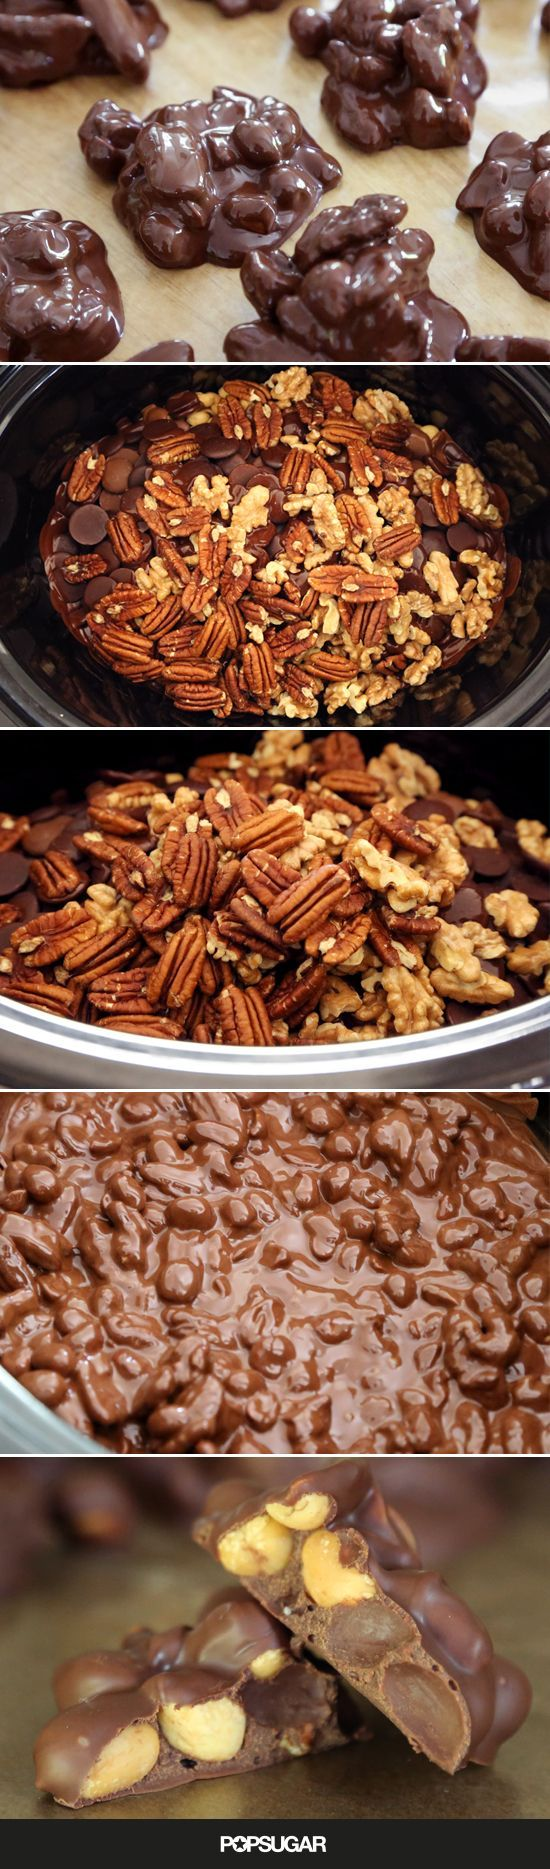 Check out Crockpot Chocolate-Nut Clusters. It's so easy to make ...